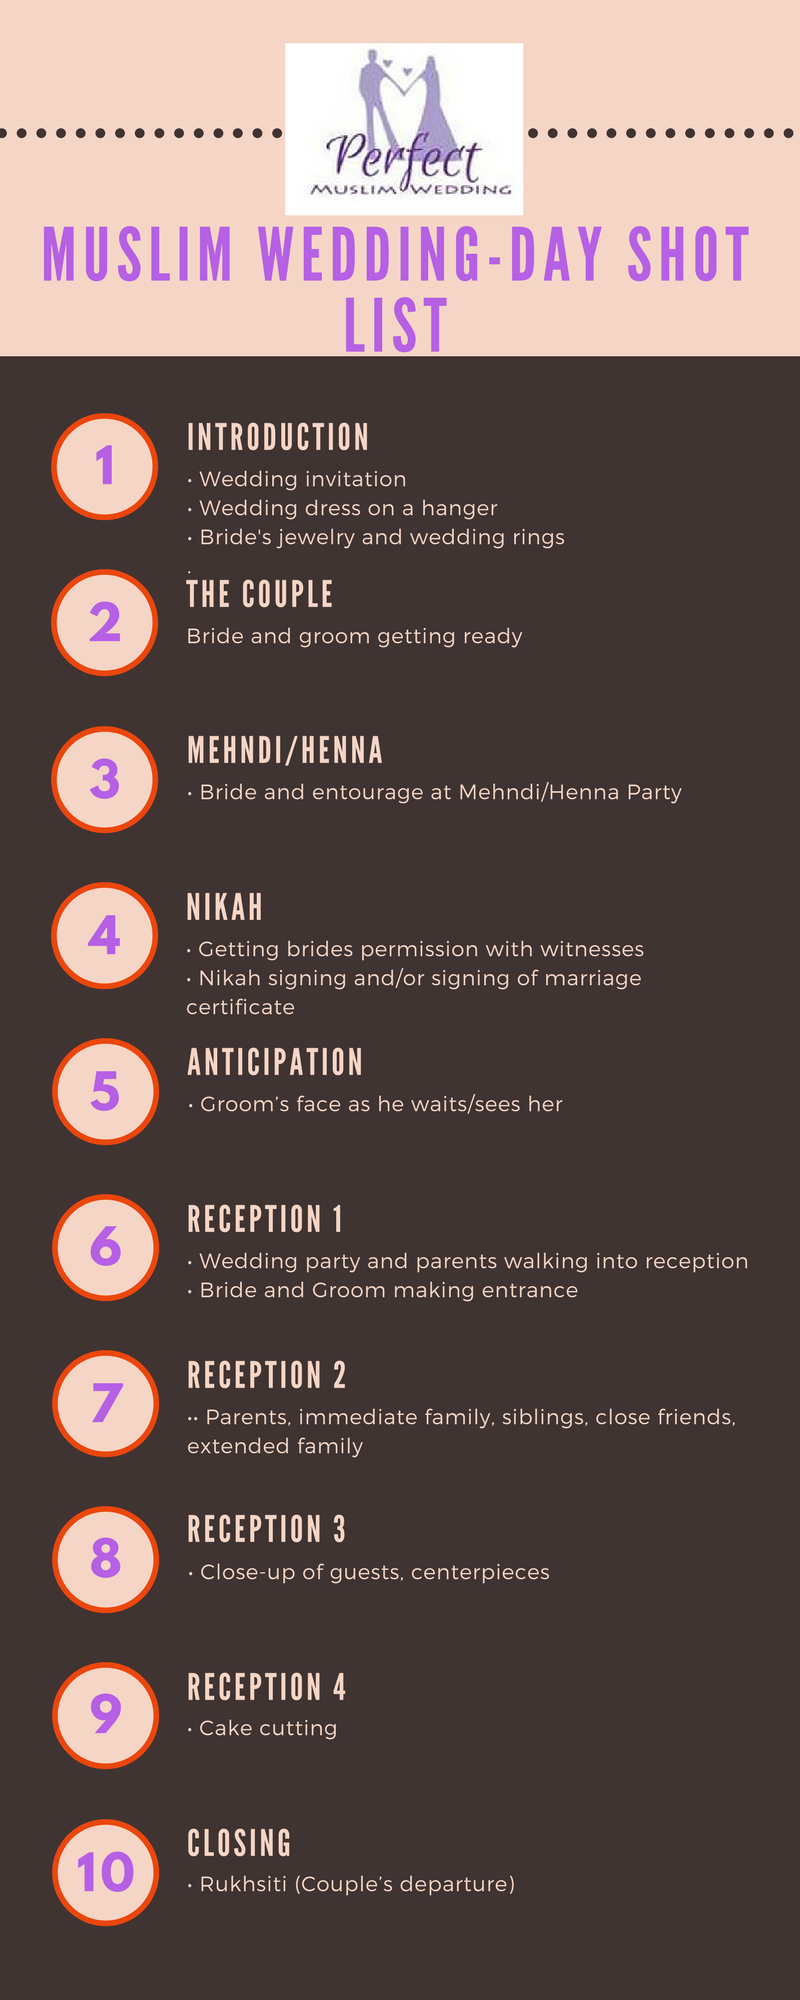 free online muslim wedding invitation cards%0A Muslim Wedding Day Shot List Infographic everything from getting ready to  mehndi  henna  nikah